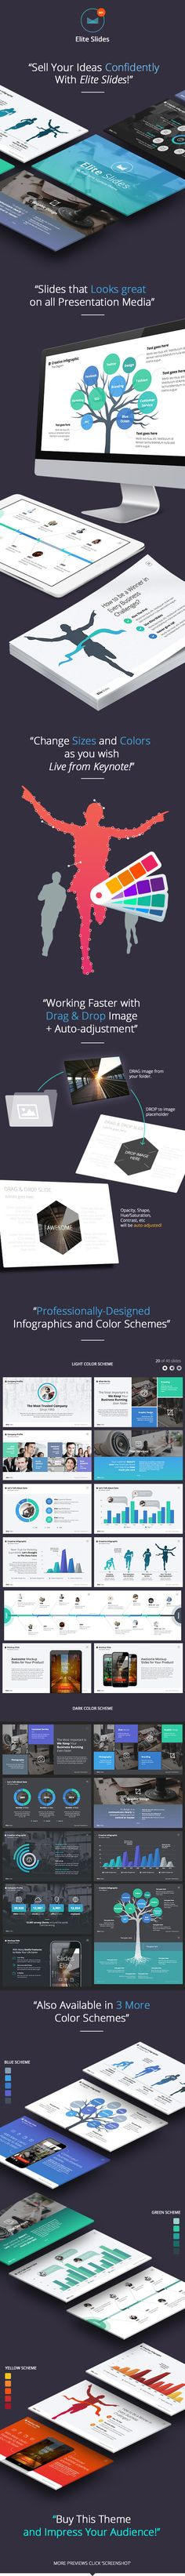 Slides Elite - Keynote Template (volume 1) — Keynote KEY #event #blue • Available here → https://graphicriver.net/item/slides-elite-keynote-template-volume-1/9660235?ref=pxcr